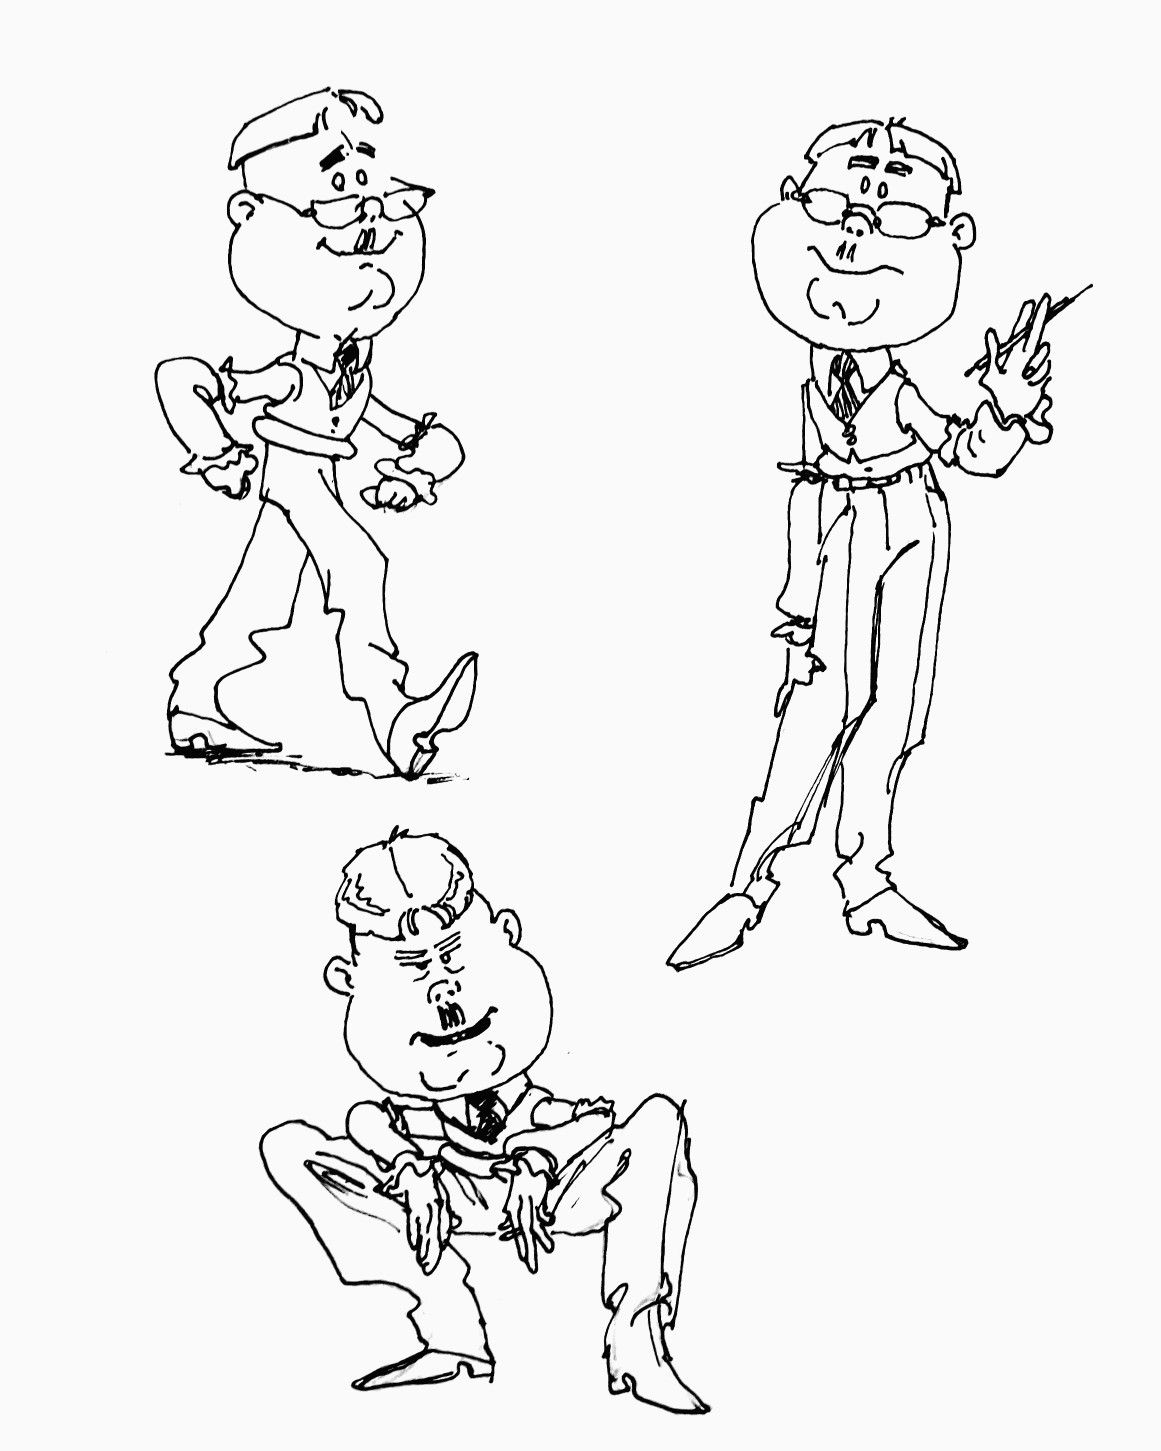 Character Design Animation Character Animation Sketch